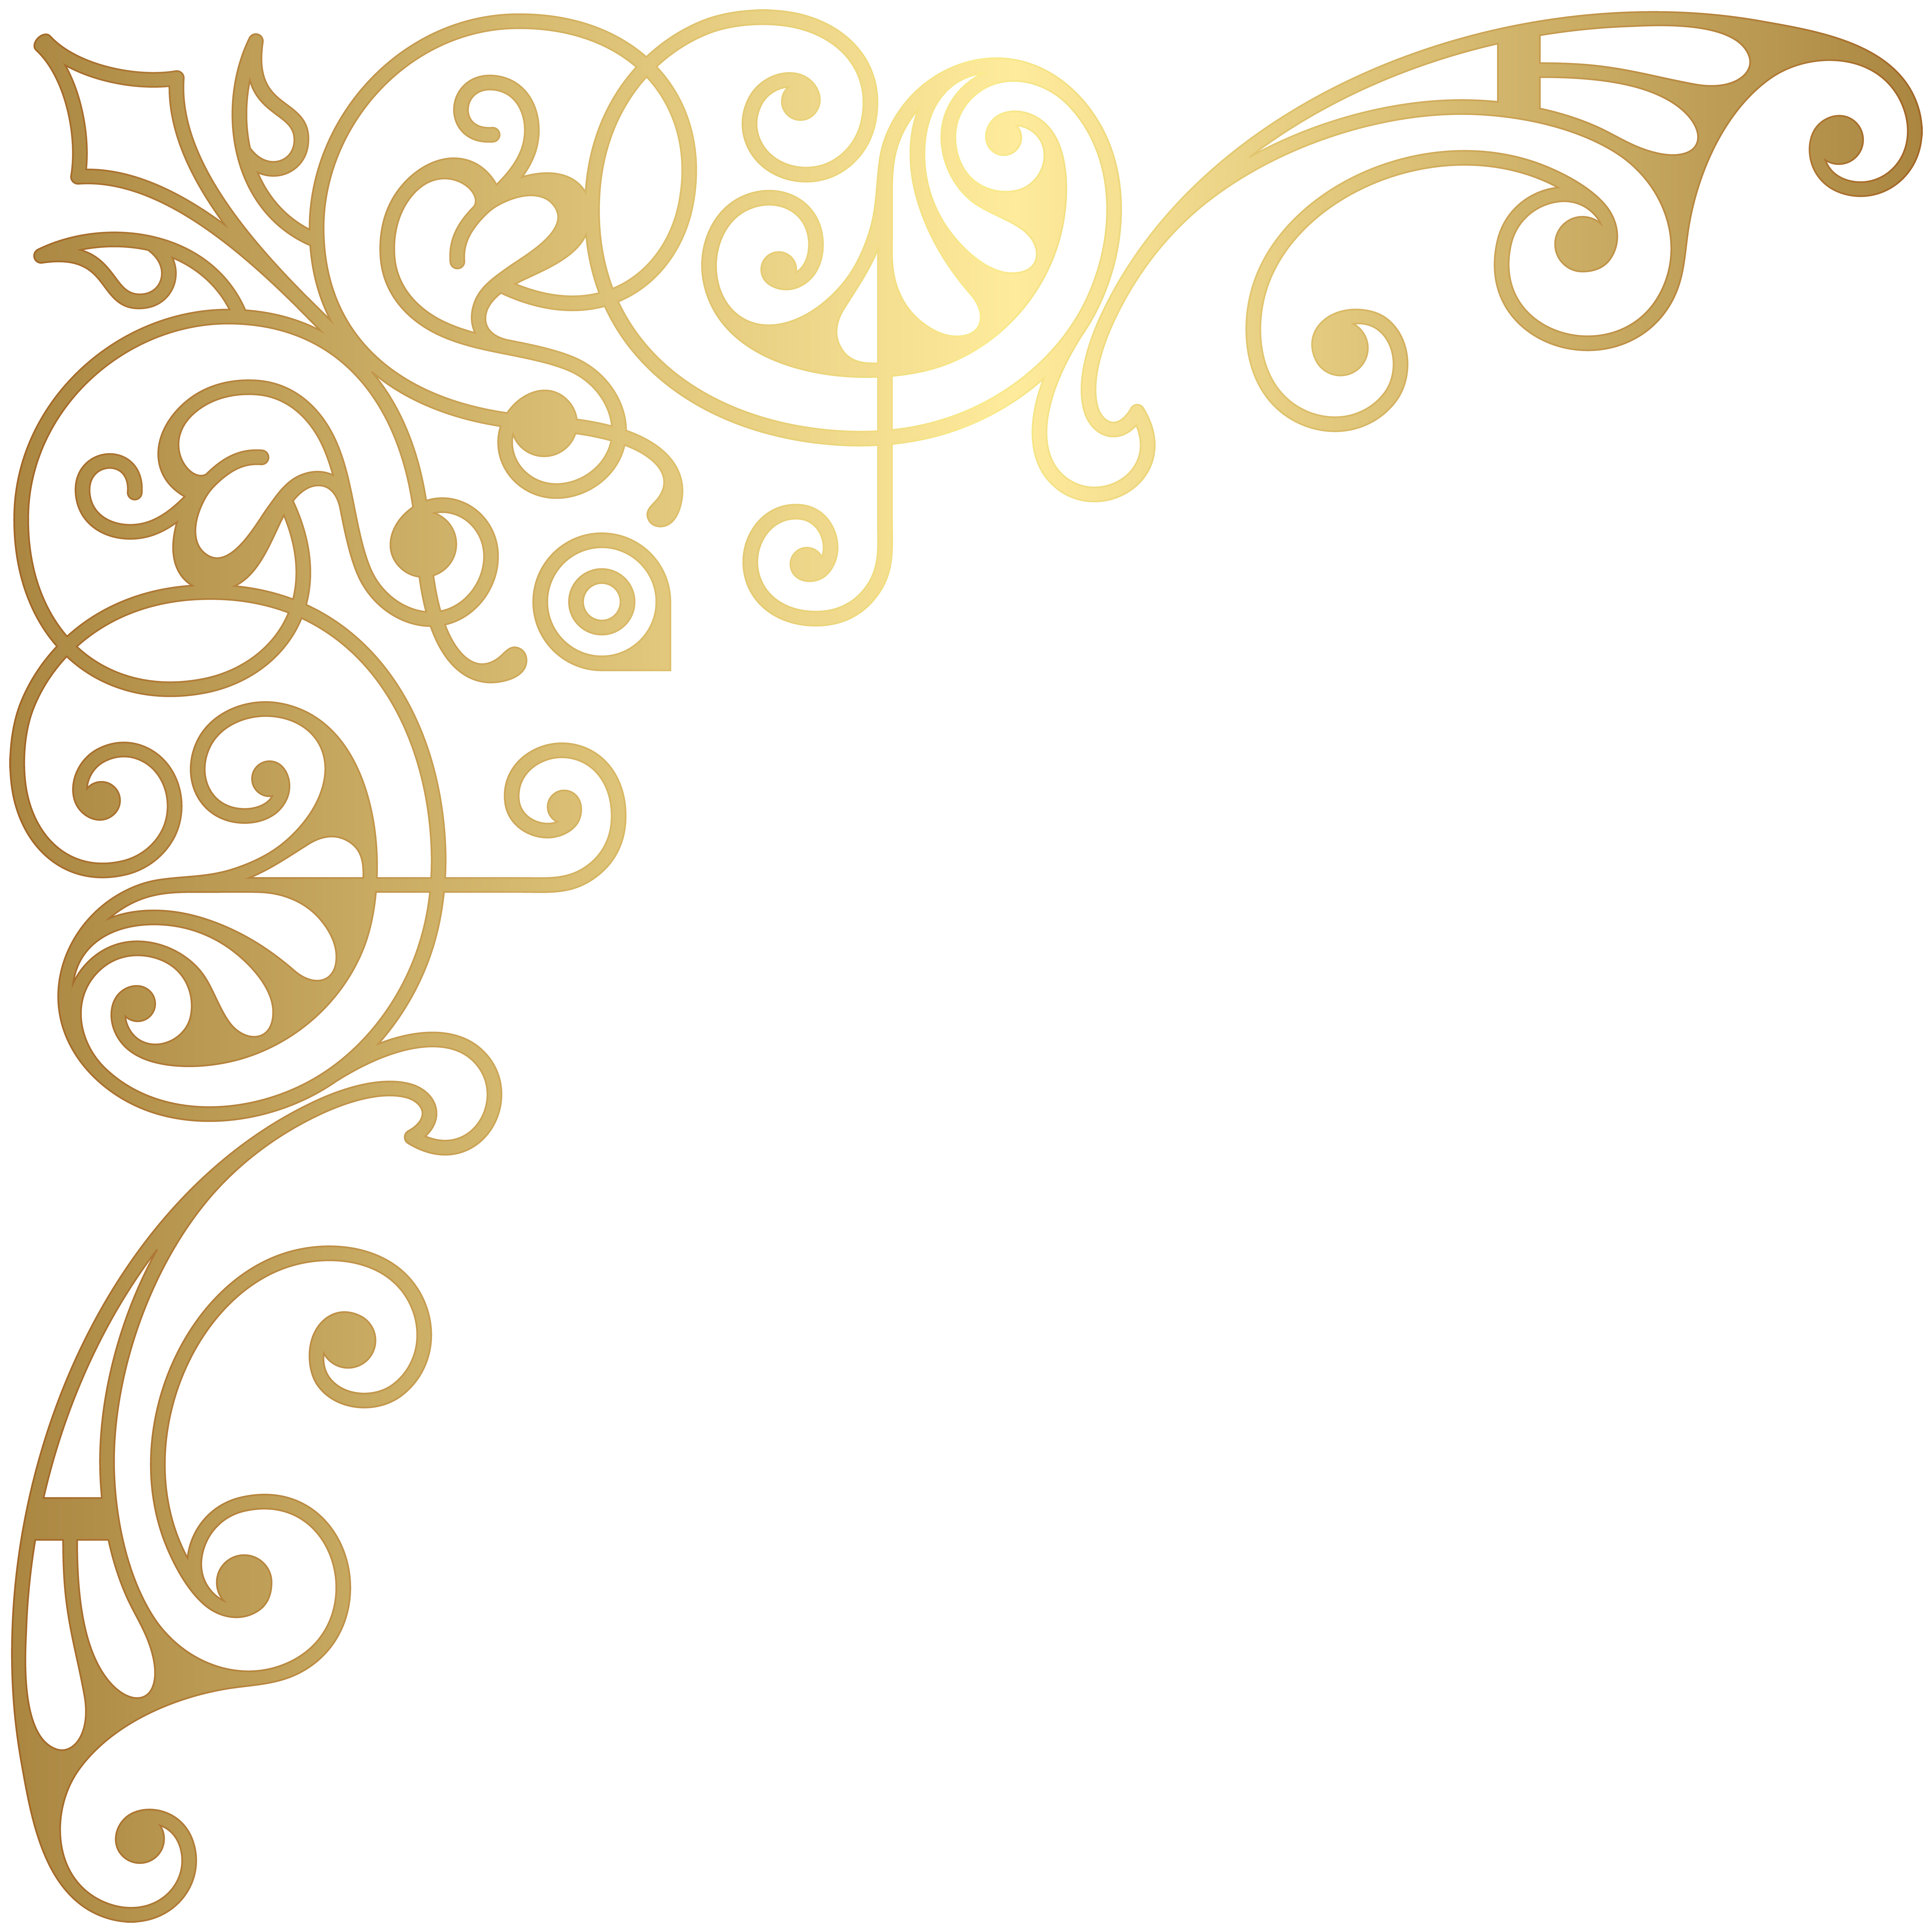 Gold corner borders png. Related image sommer clip